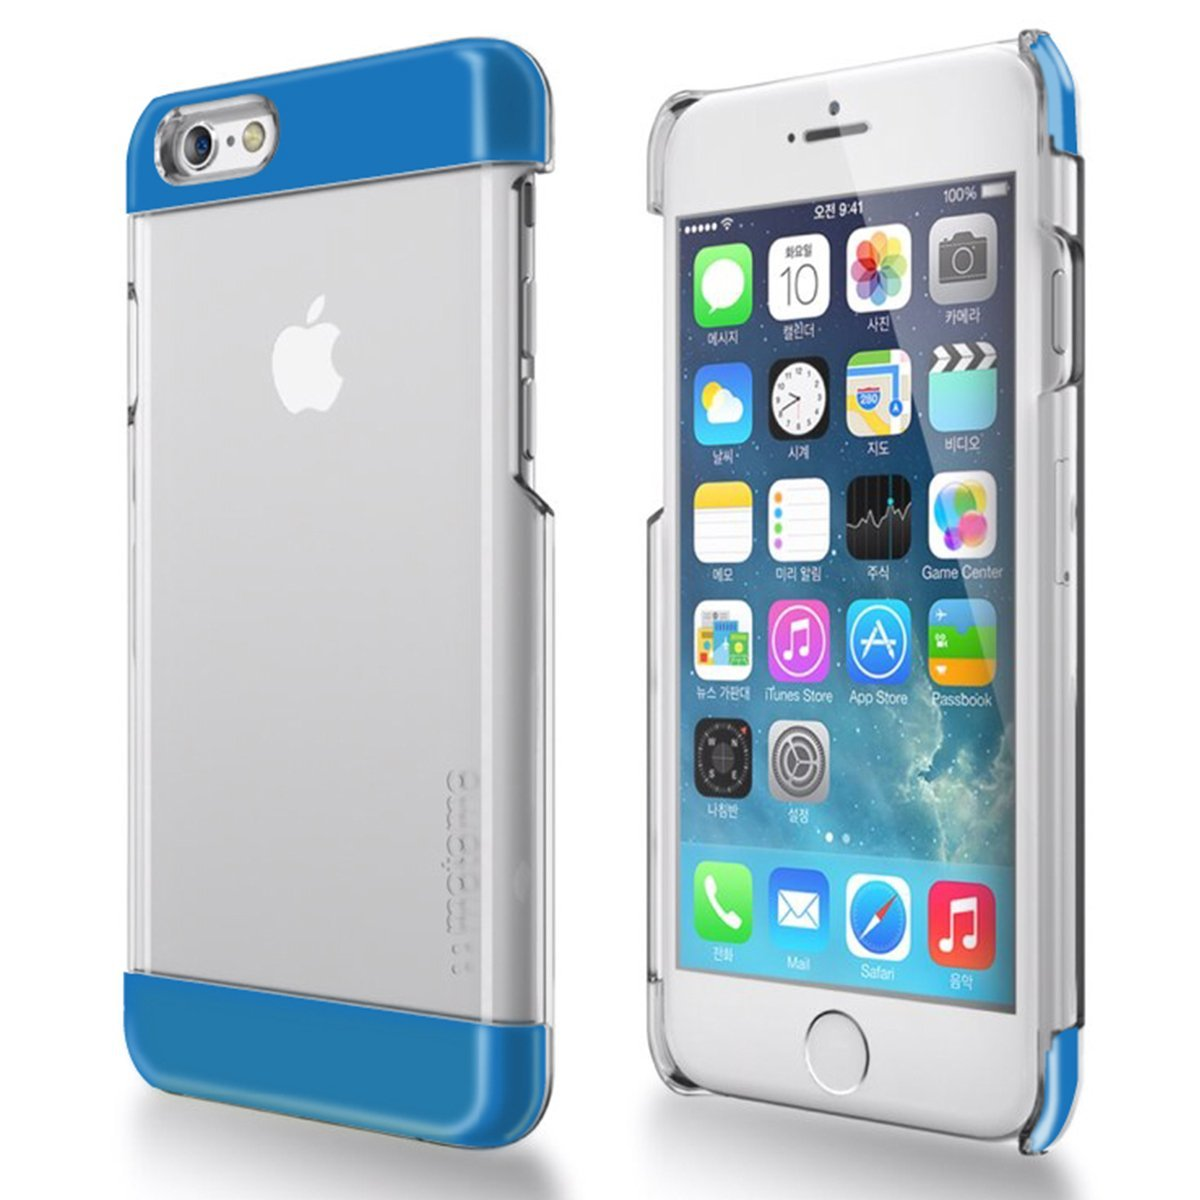 Apple iPhone 6 PLUS/6S PLUS (5.5 inch) Case, INO Wing Series [Blue] Slim Clear Form-Fitting Hard Plastic Protective Case Cover